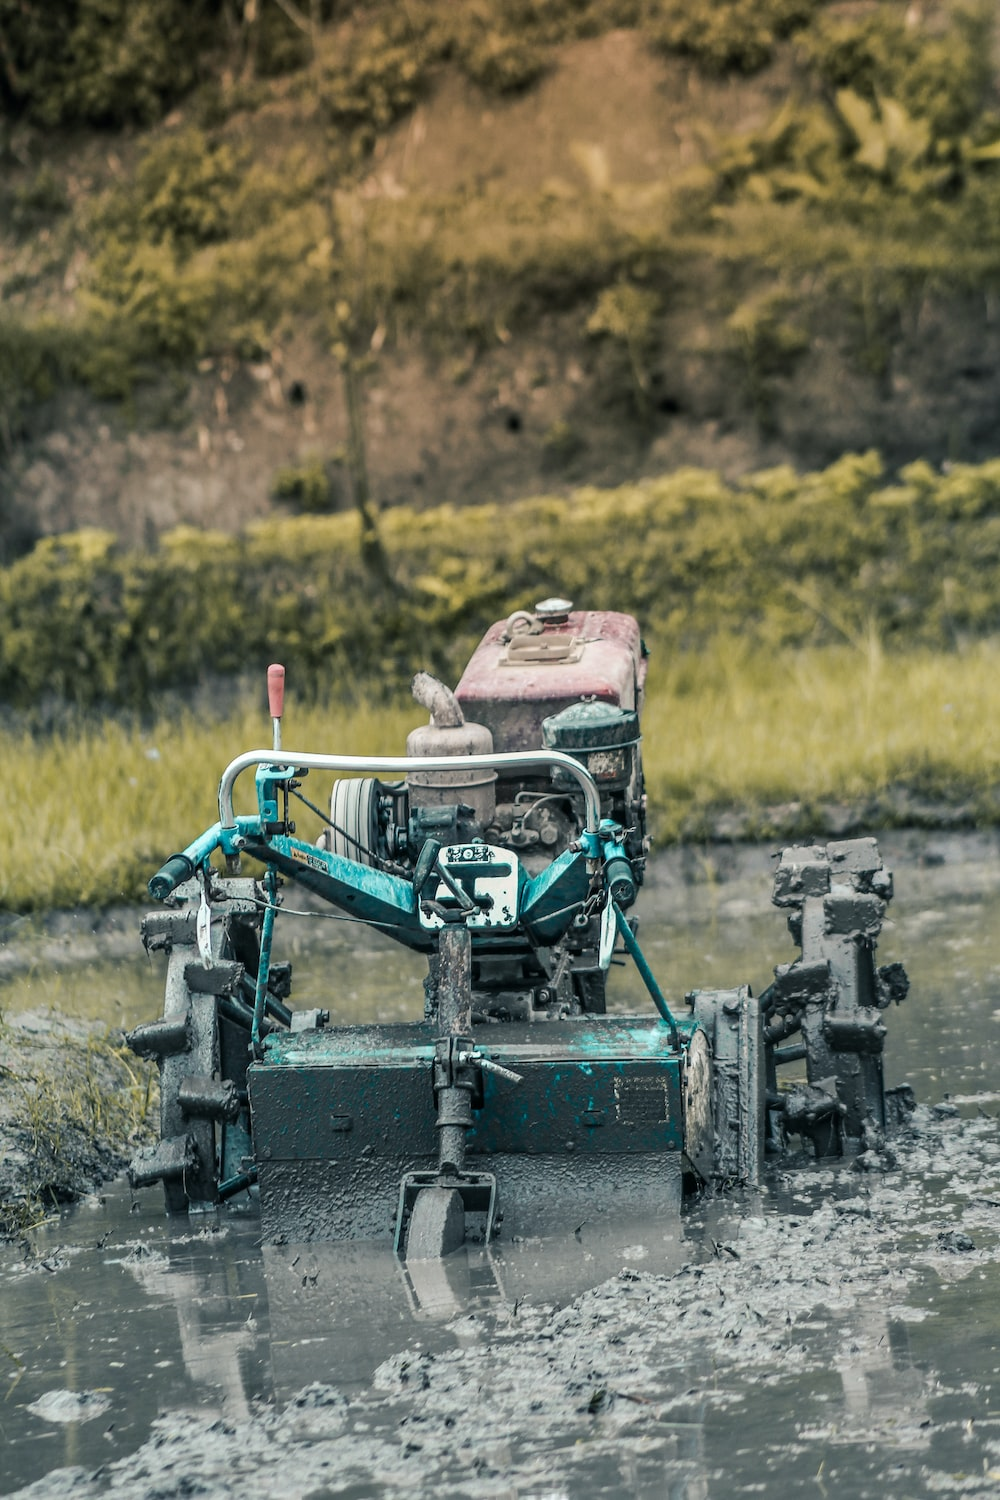 green and black metal machine on green grass field during daytime